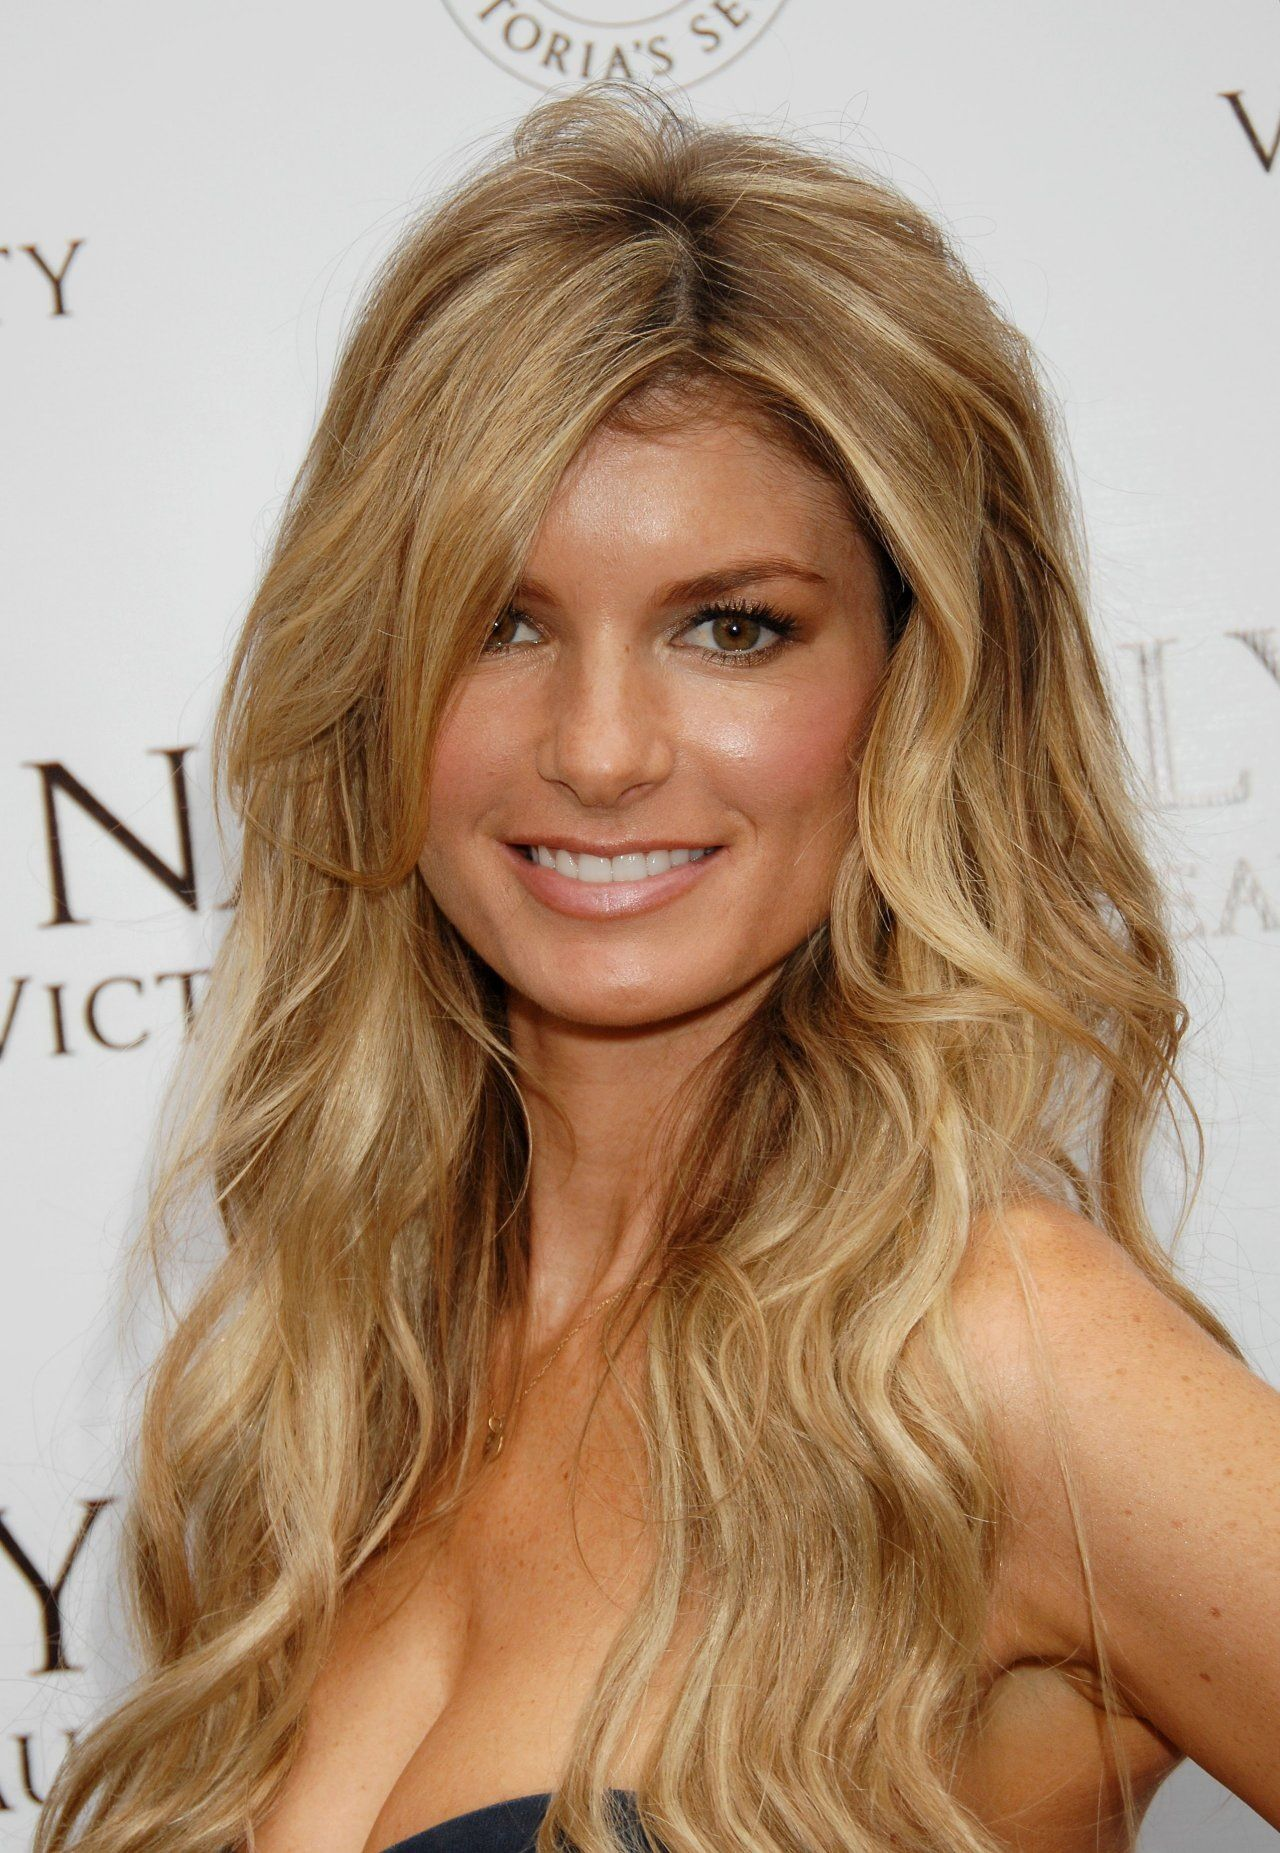 Supermodel Marisa Miller Is Known For Her Appearances In Sports Illustrated And Victoria S Secret Fashion Shows Description From C Her Hair Hair Marisa Miller